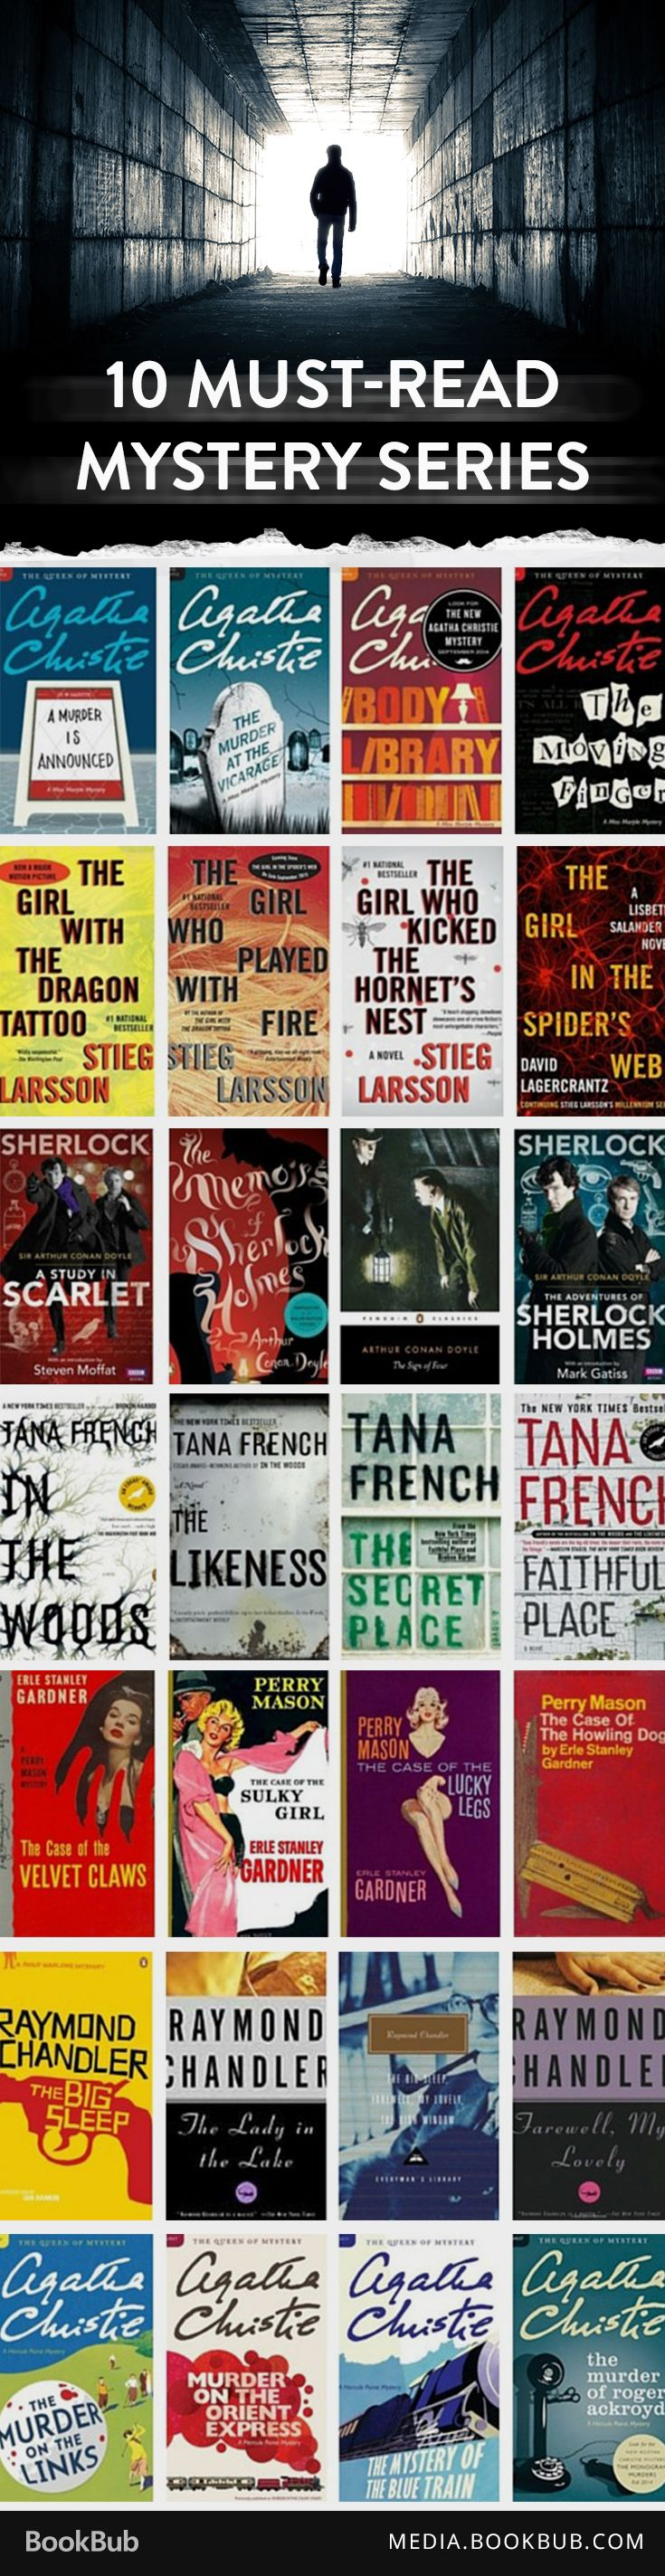 10 Classic Mystery Series Every Fan Should Read